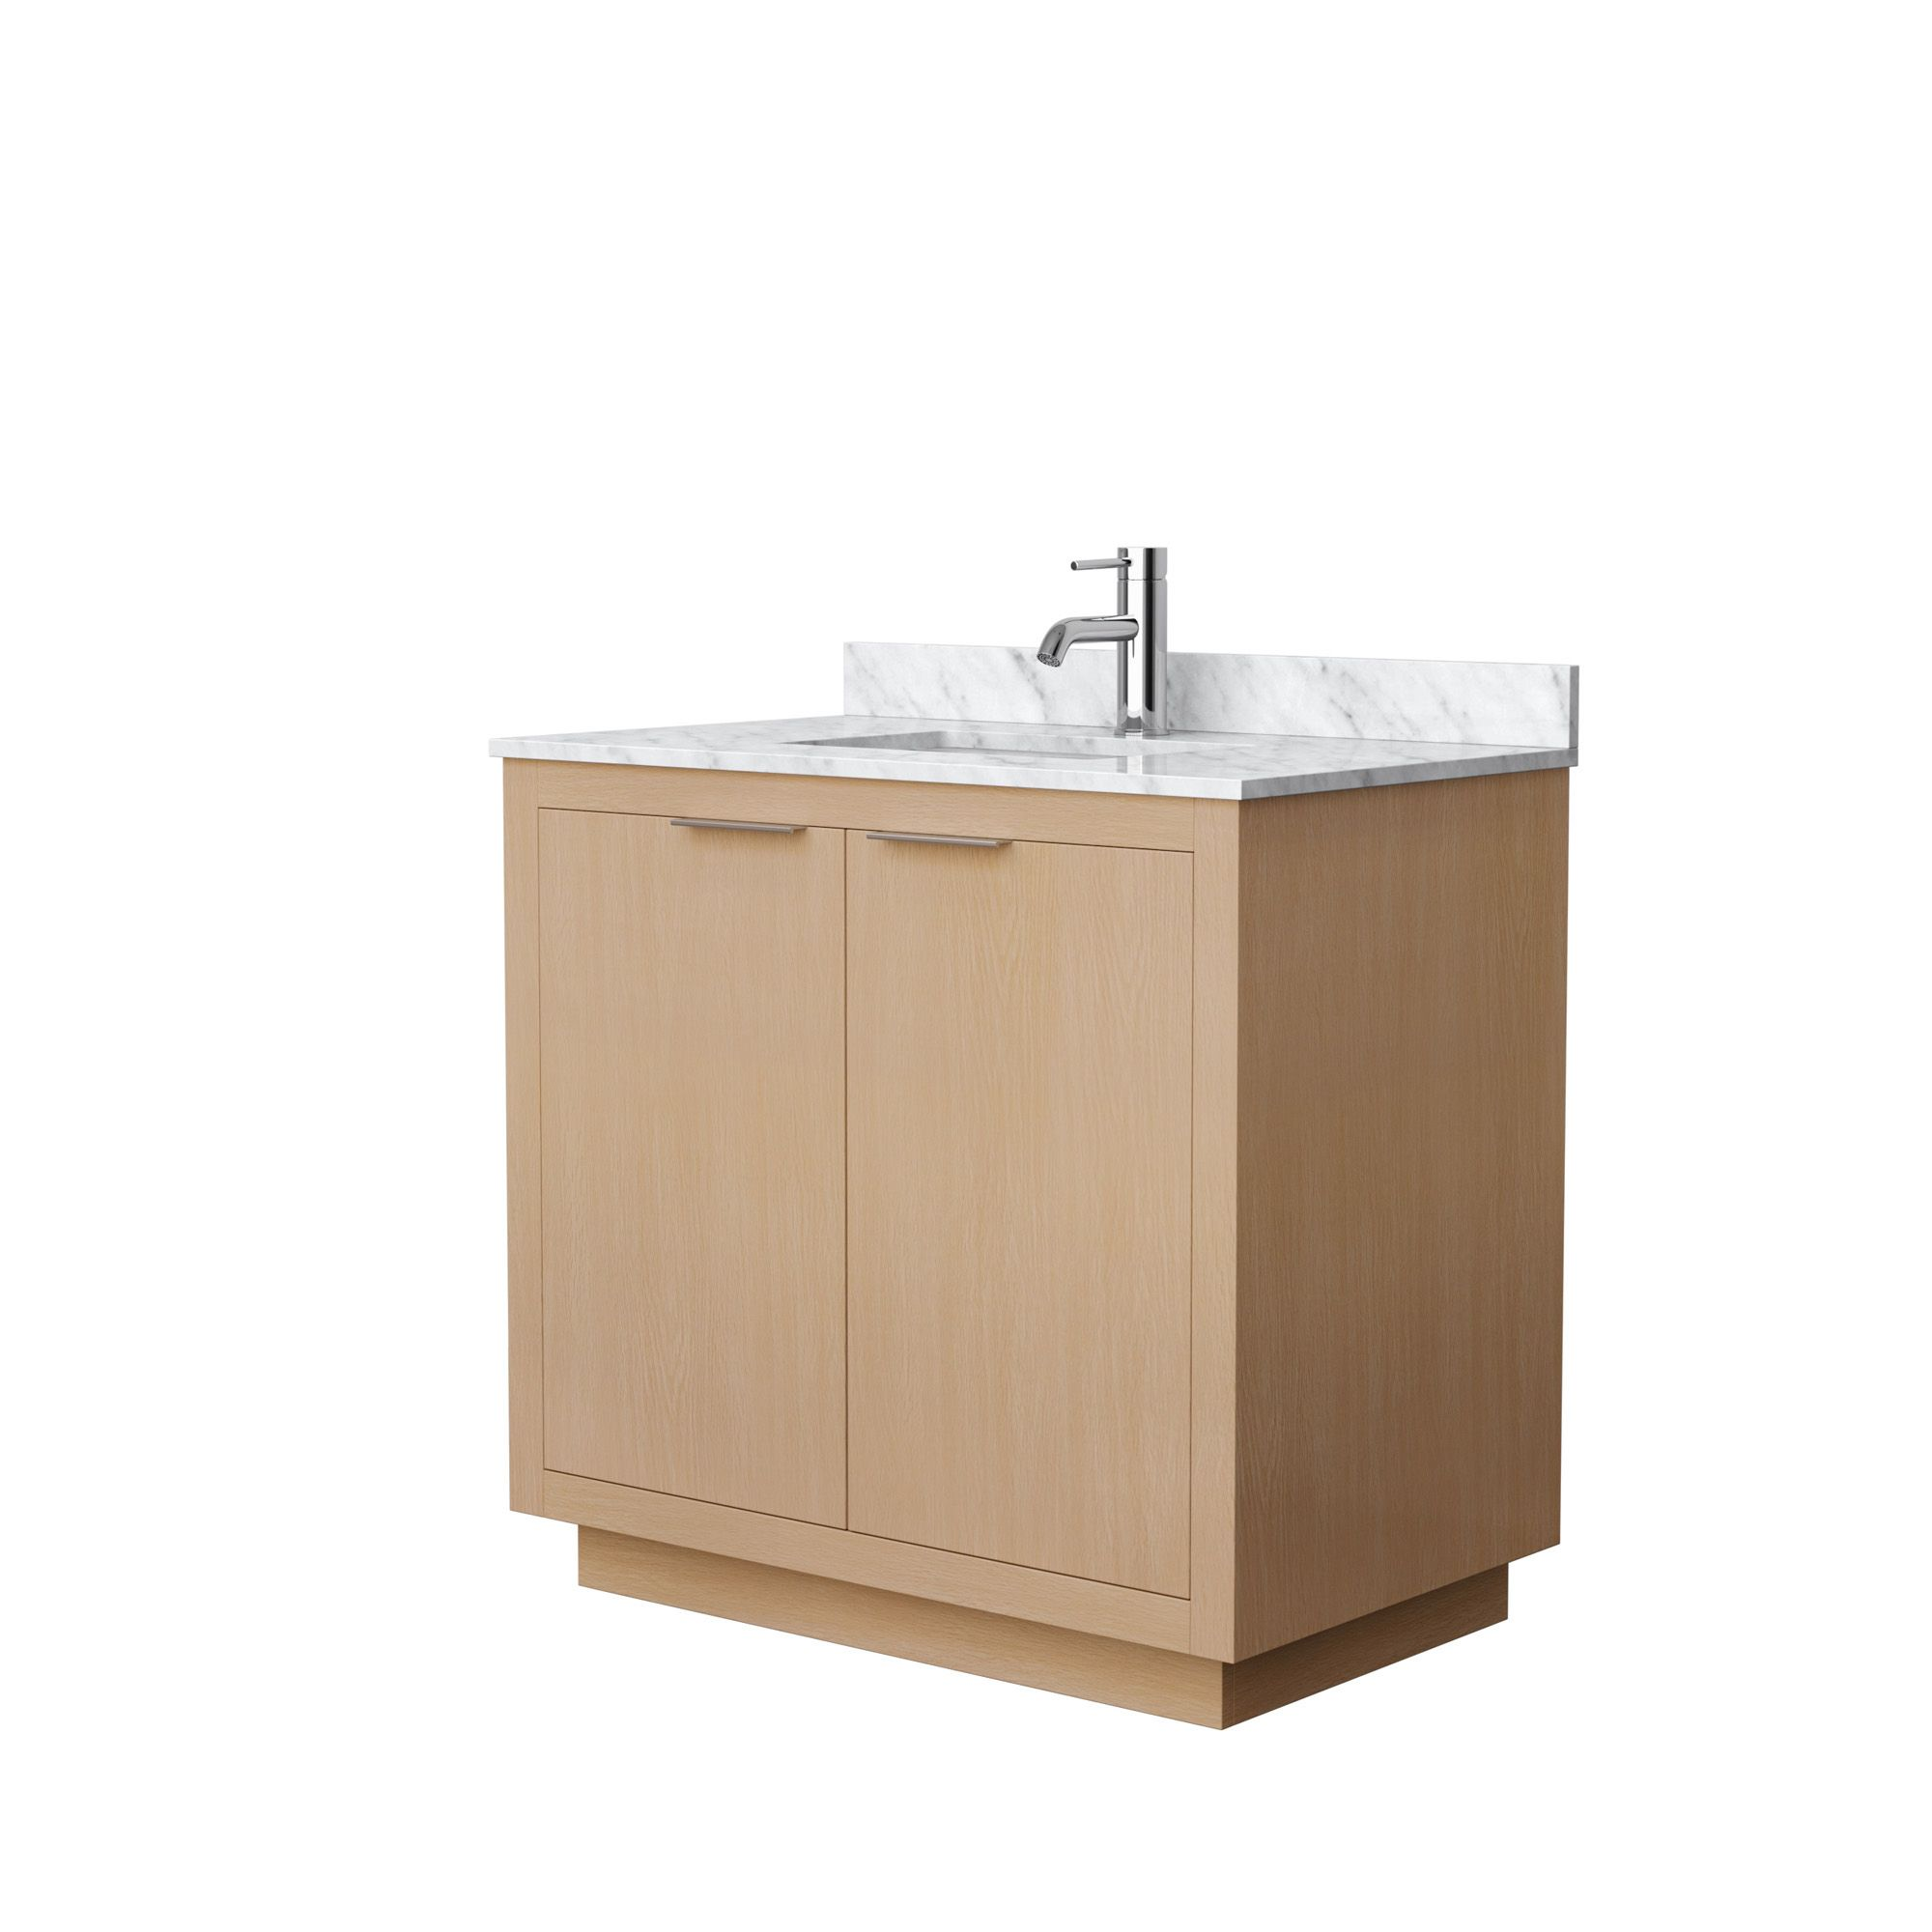 "36"" Single Bathroom Vanity in Light Straw with Countertop and Hardware Options"